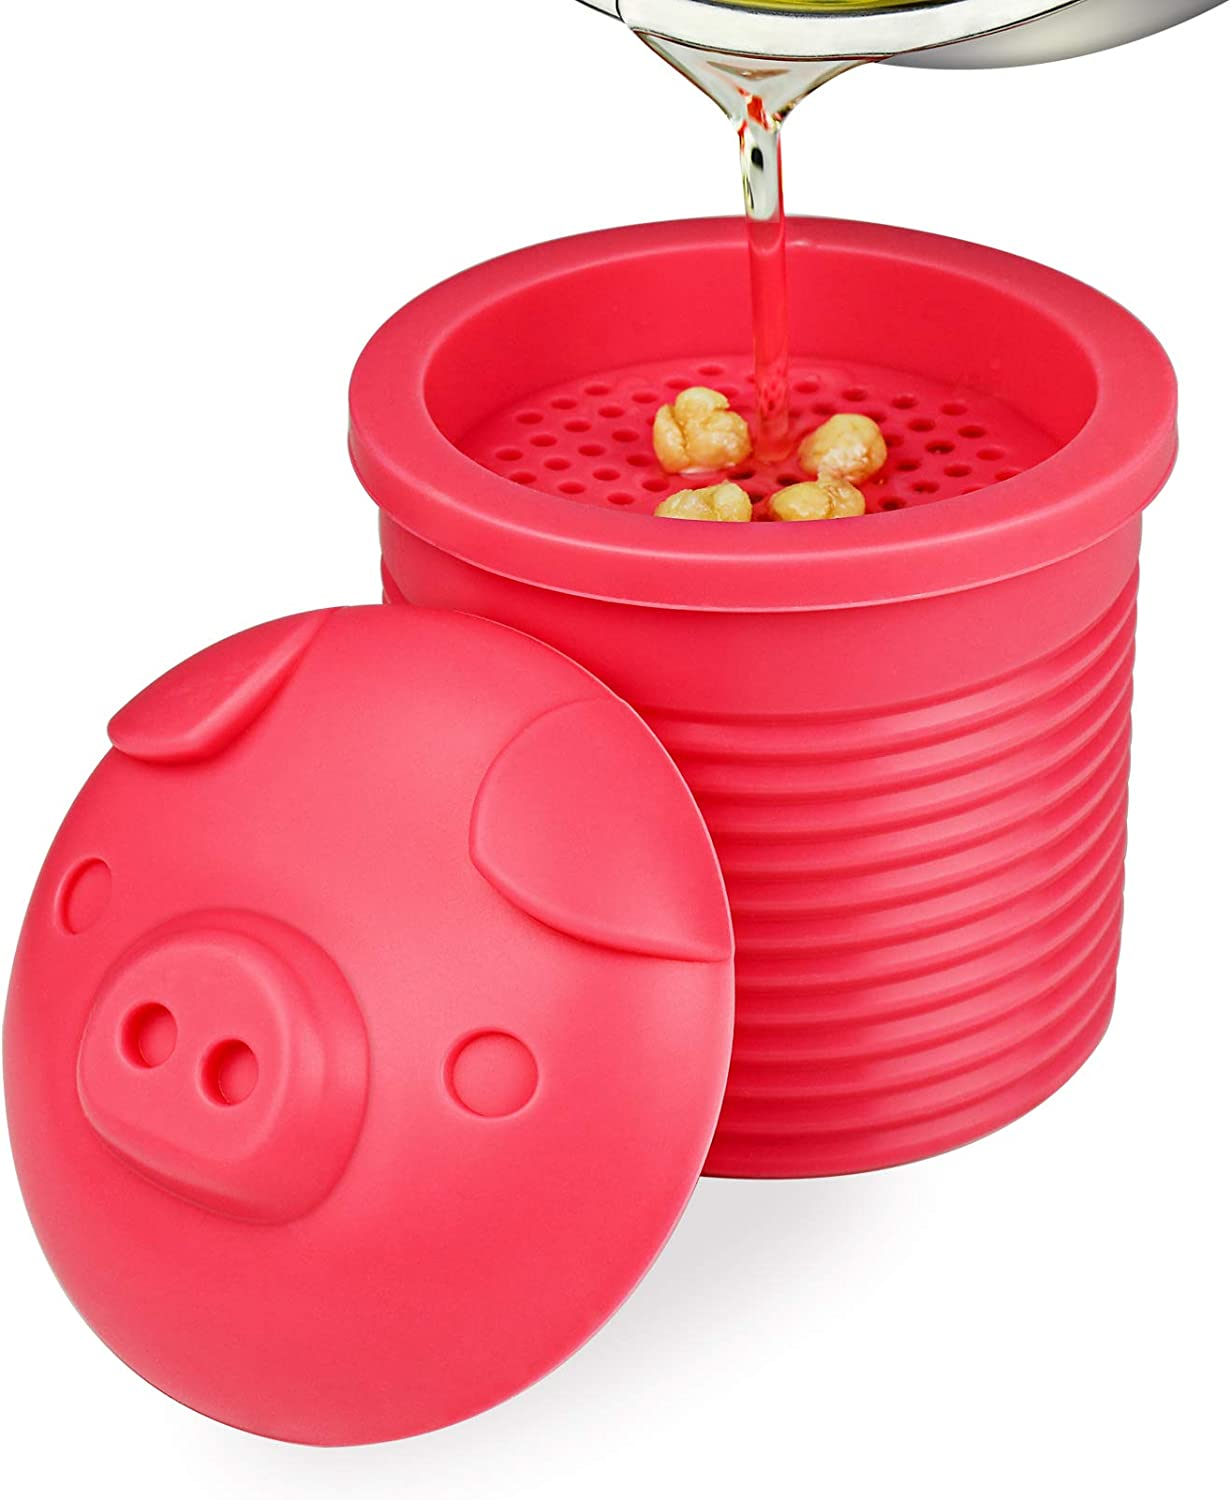 Bacon Grease Container Collector with Silicone Mesh Strainer Cute Pig Lid Food Grade Grease Can for Kitchen Frying Oil and Bacon Grease Storage (Rose Red)